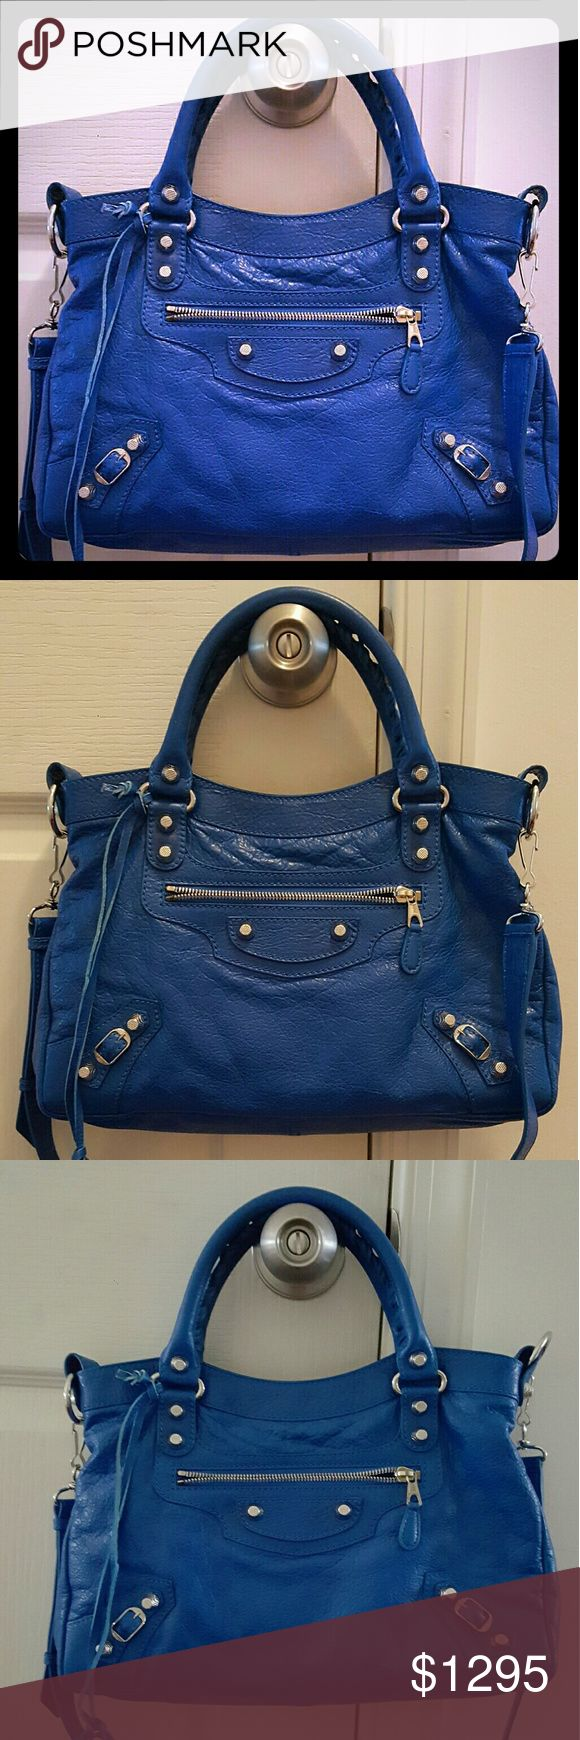 Balenciaga town bag Authentic with tags, card, leather tag, mirror Balenciaga Bags Satchels